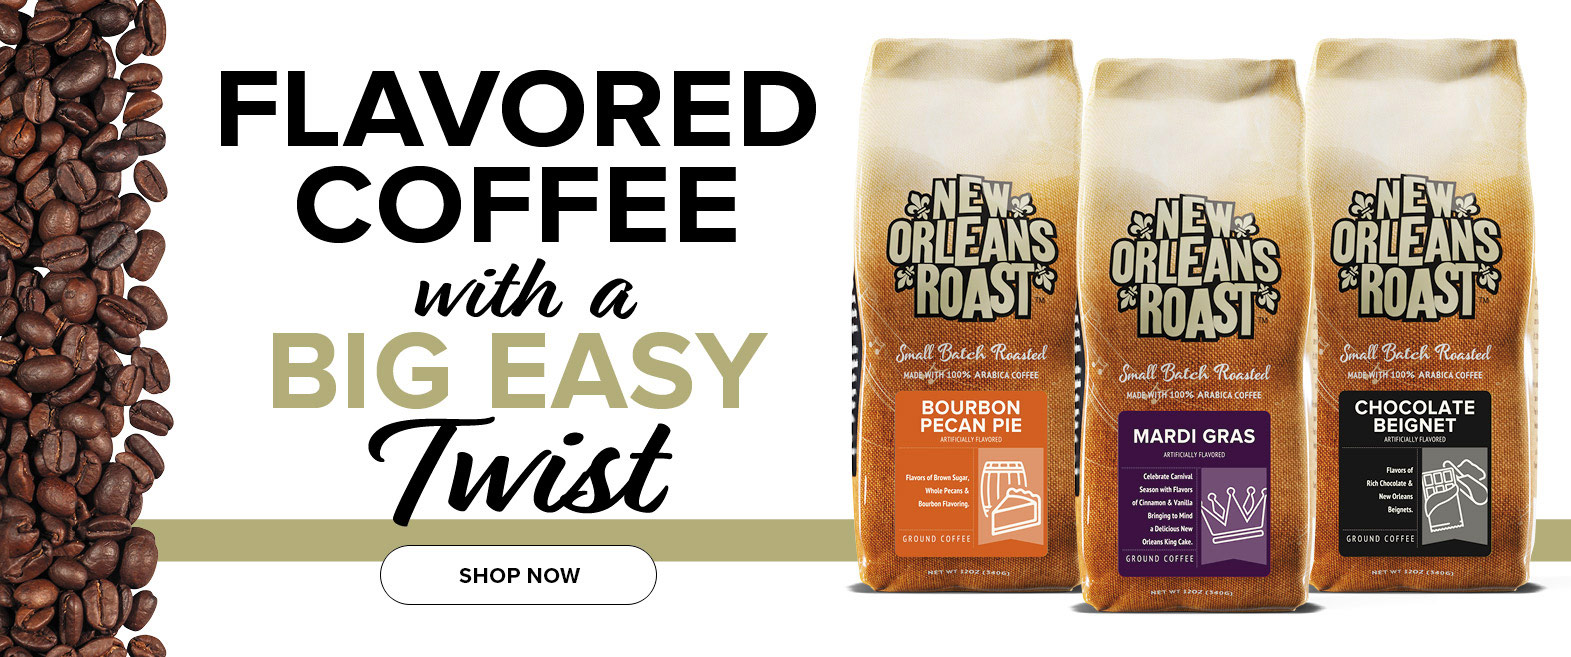 Flavored Coffee with a Big Easy Twist.  Click to shop online